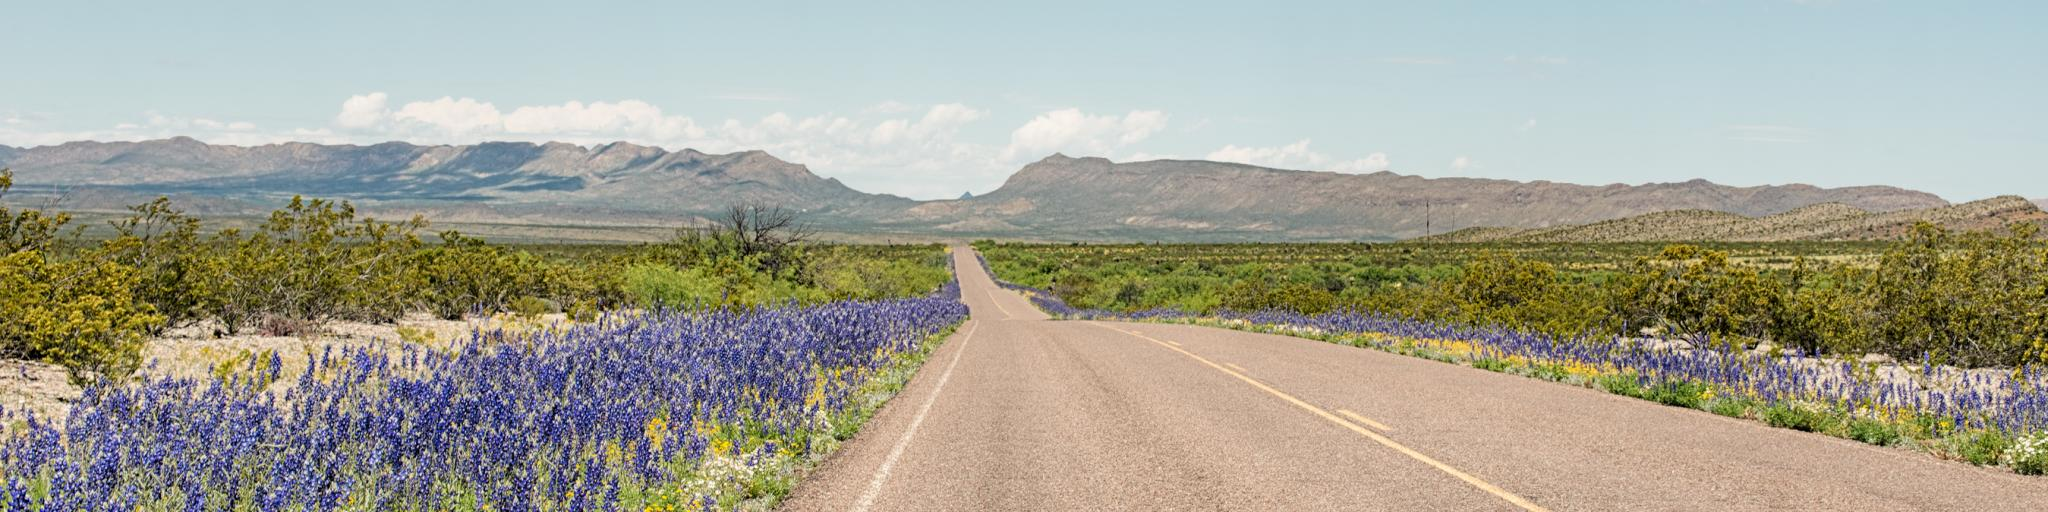 Bluebonnets growing along the roadside in Persimmon Gap on the edge of the Big Bend National Park in west Texas